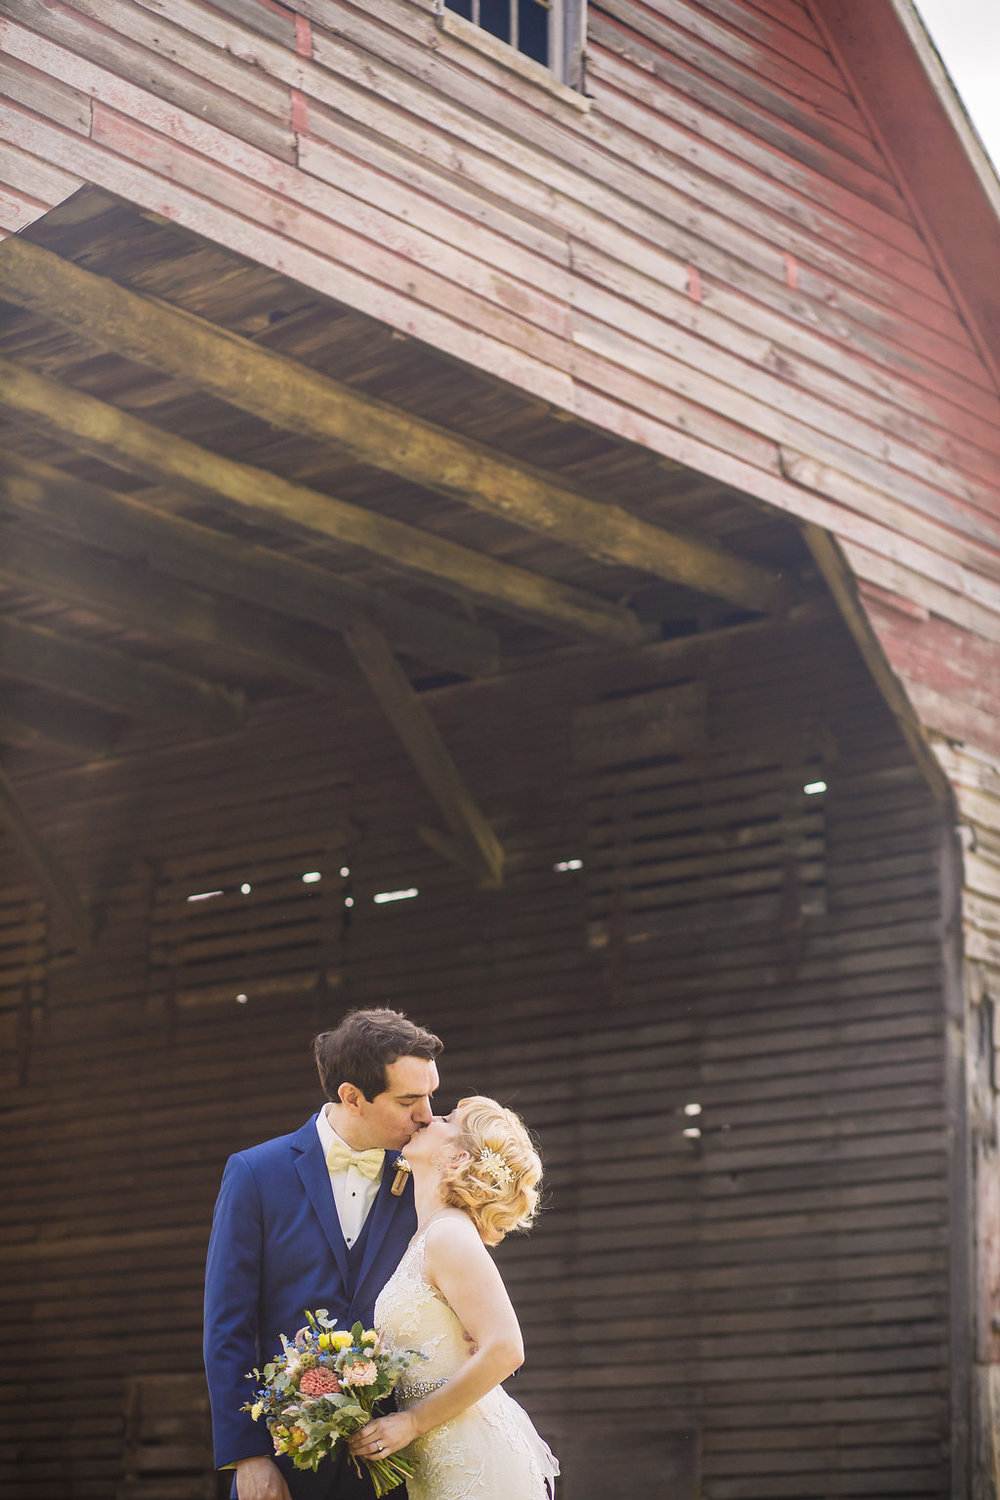 brielle-davis-events-photography-by-brea-linganore-winery-james-sarah-wedding-bride-and-groom-00024.jpg